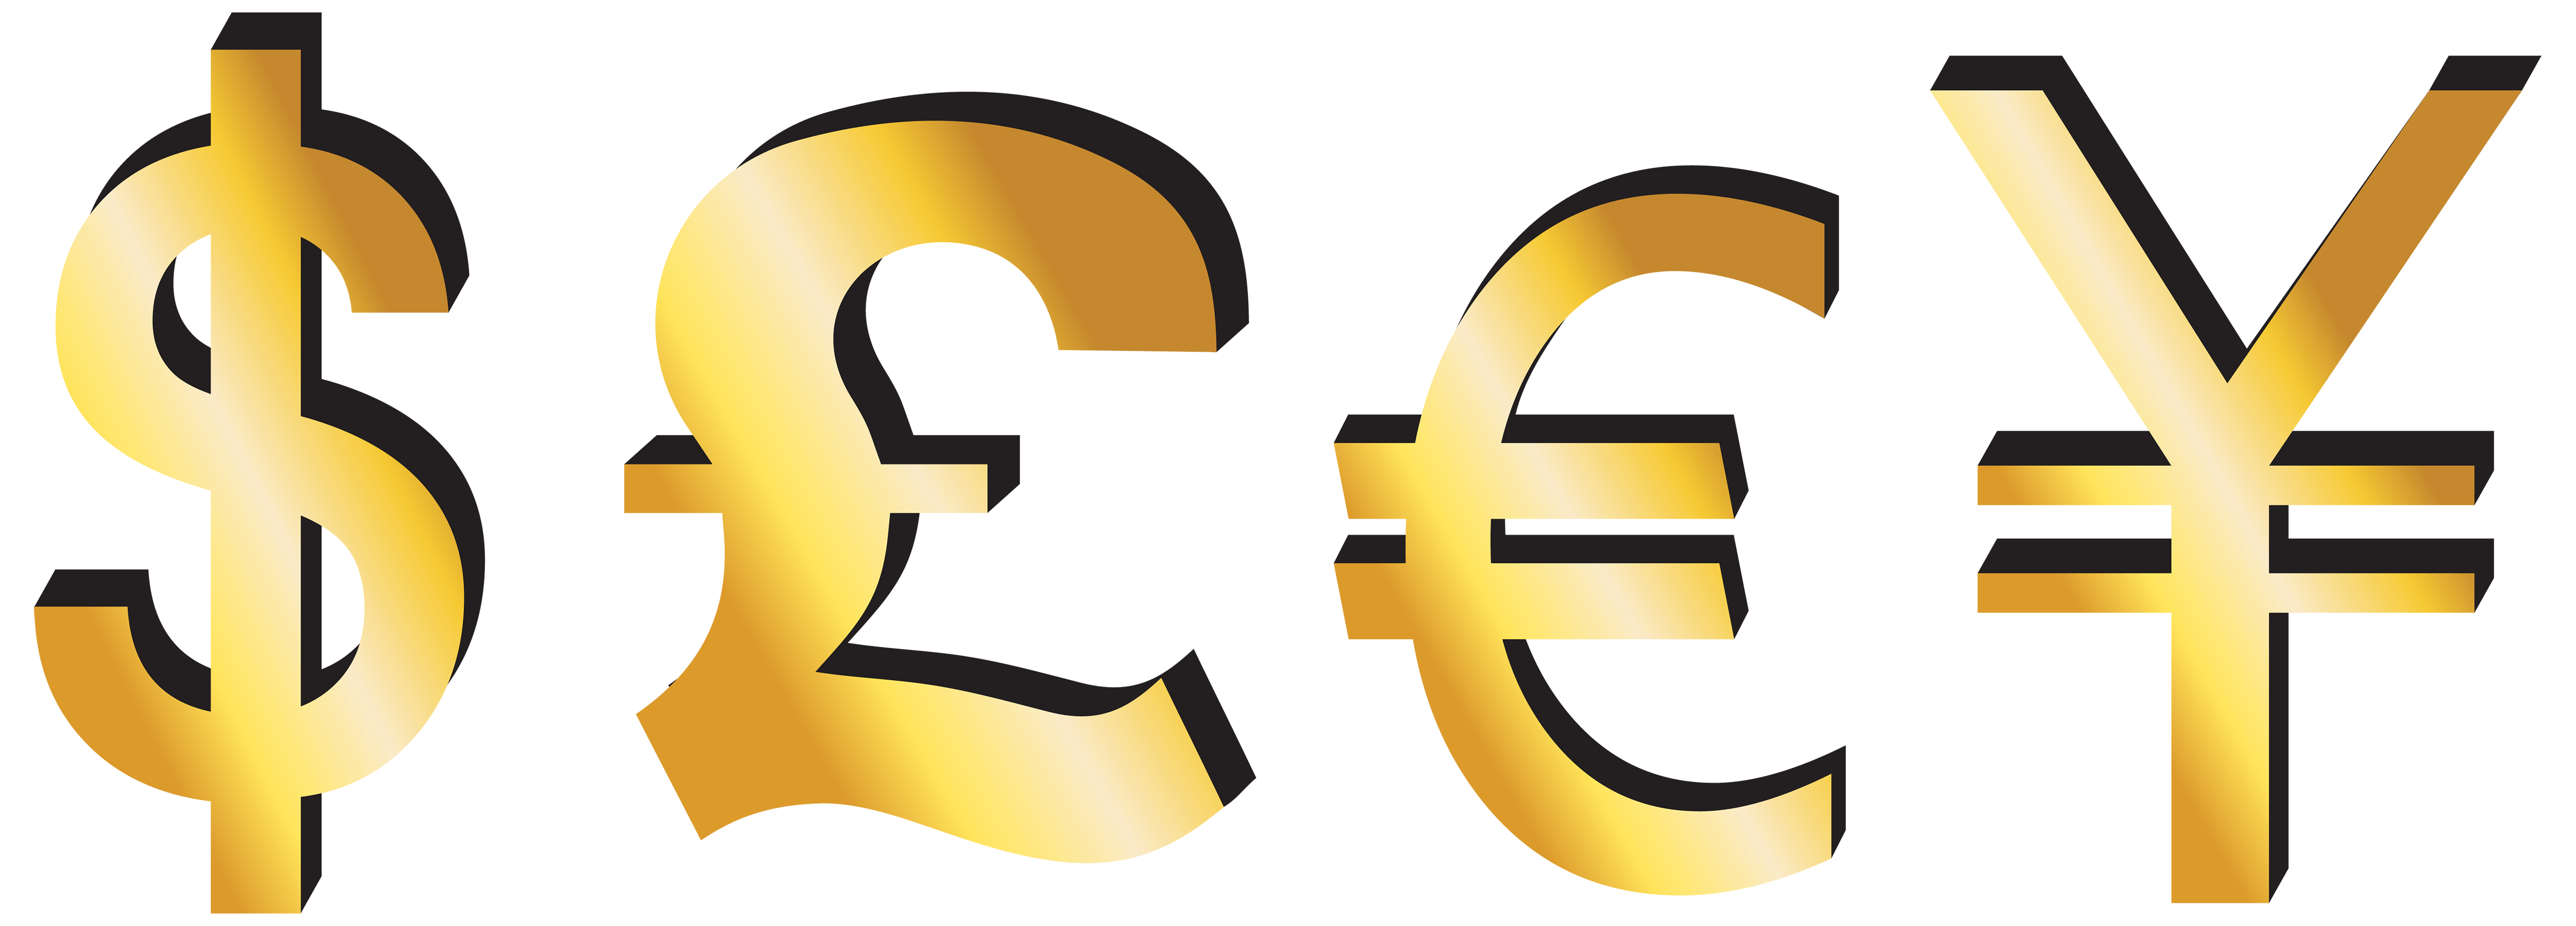 Dollar Pound Euro Yen Signs PNG Clipart - Best WEB Clipart graphic free library